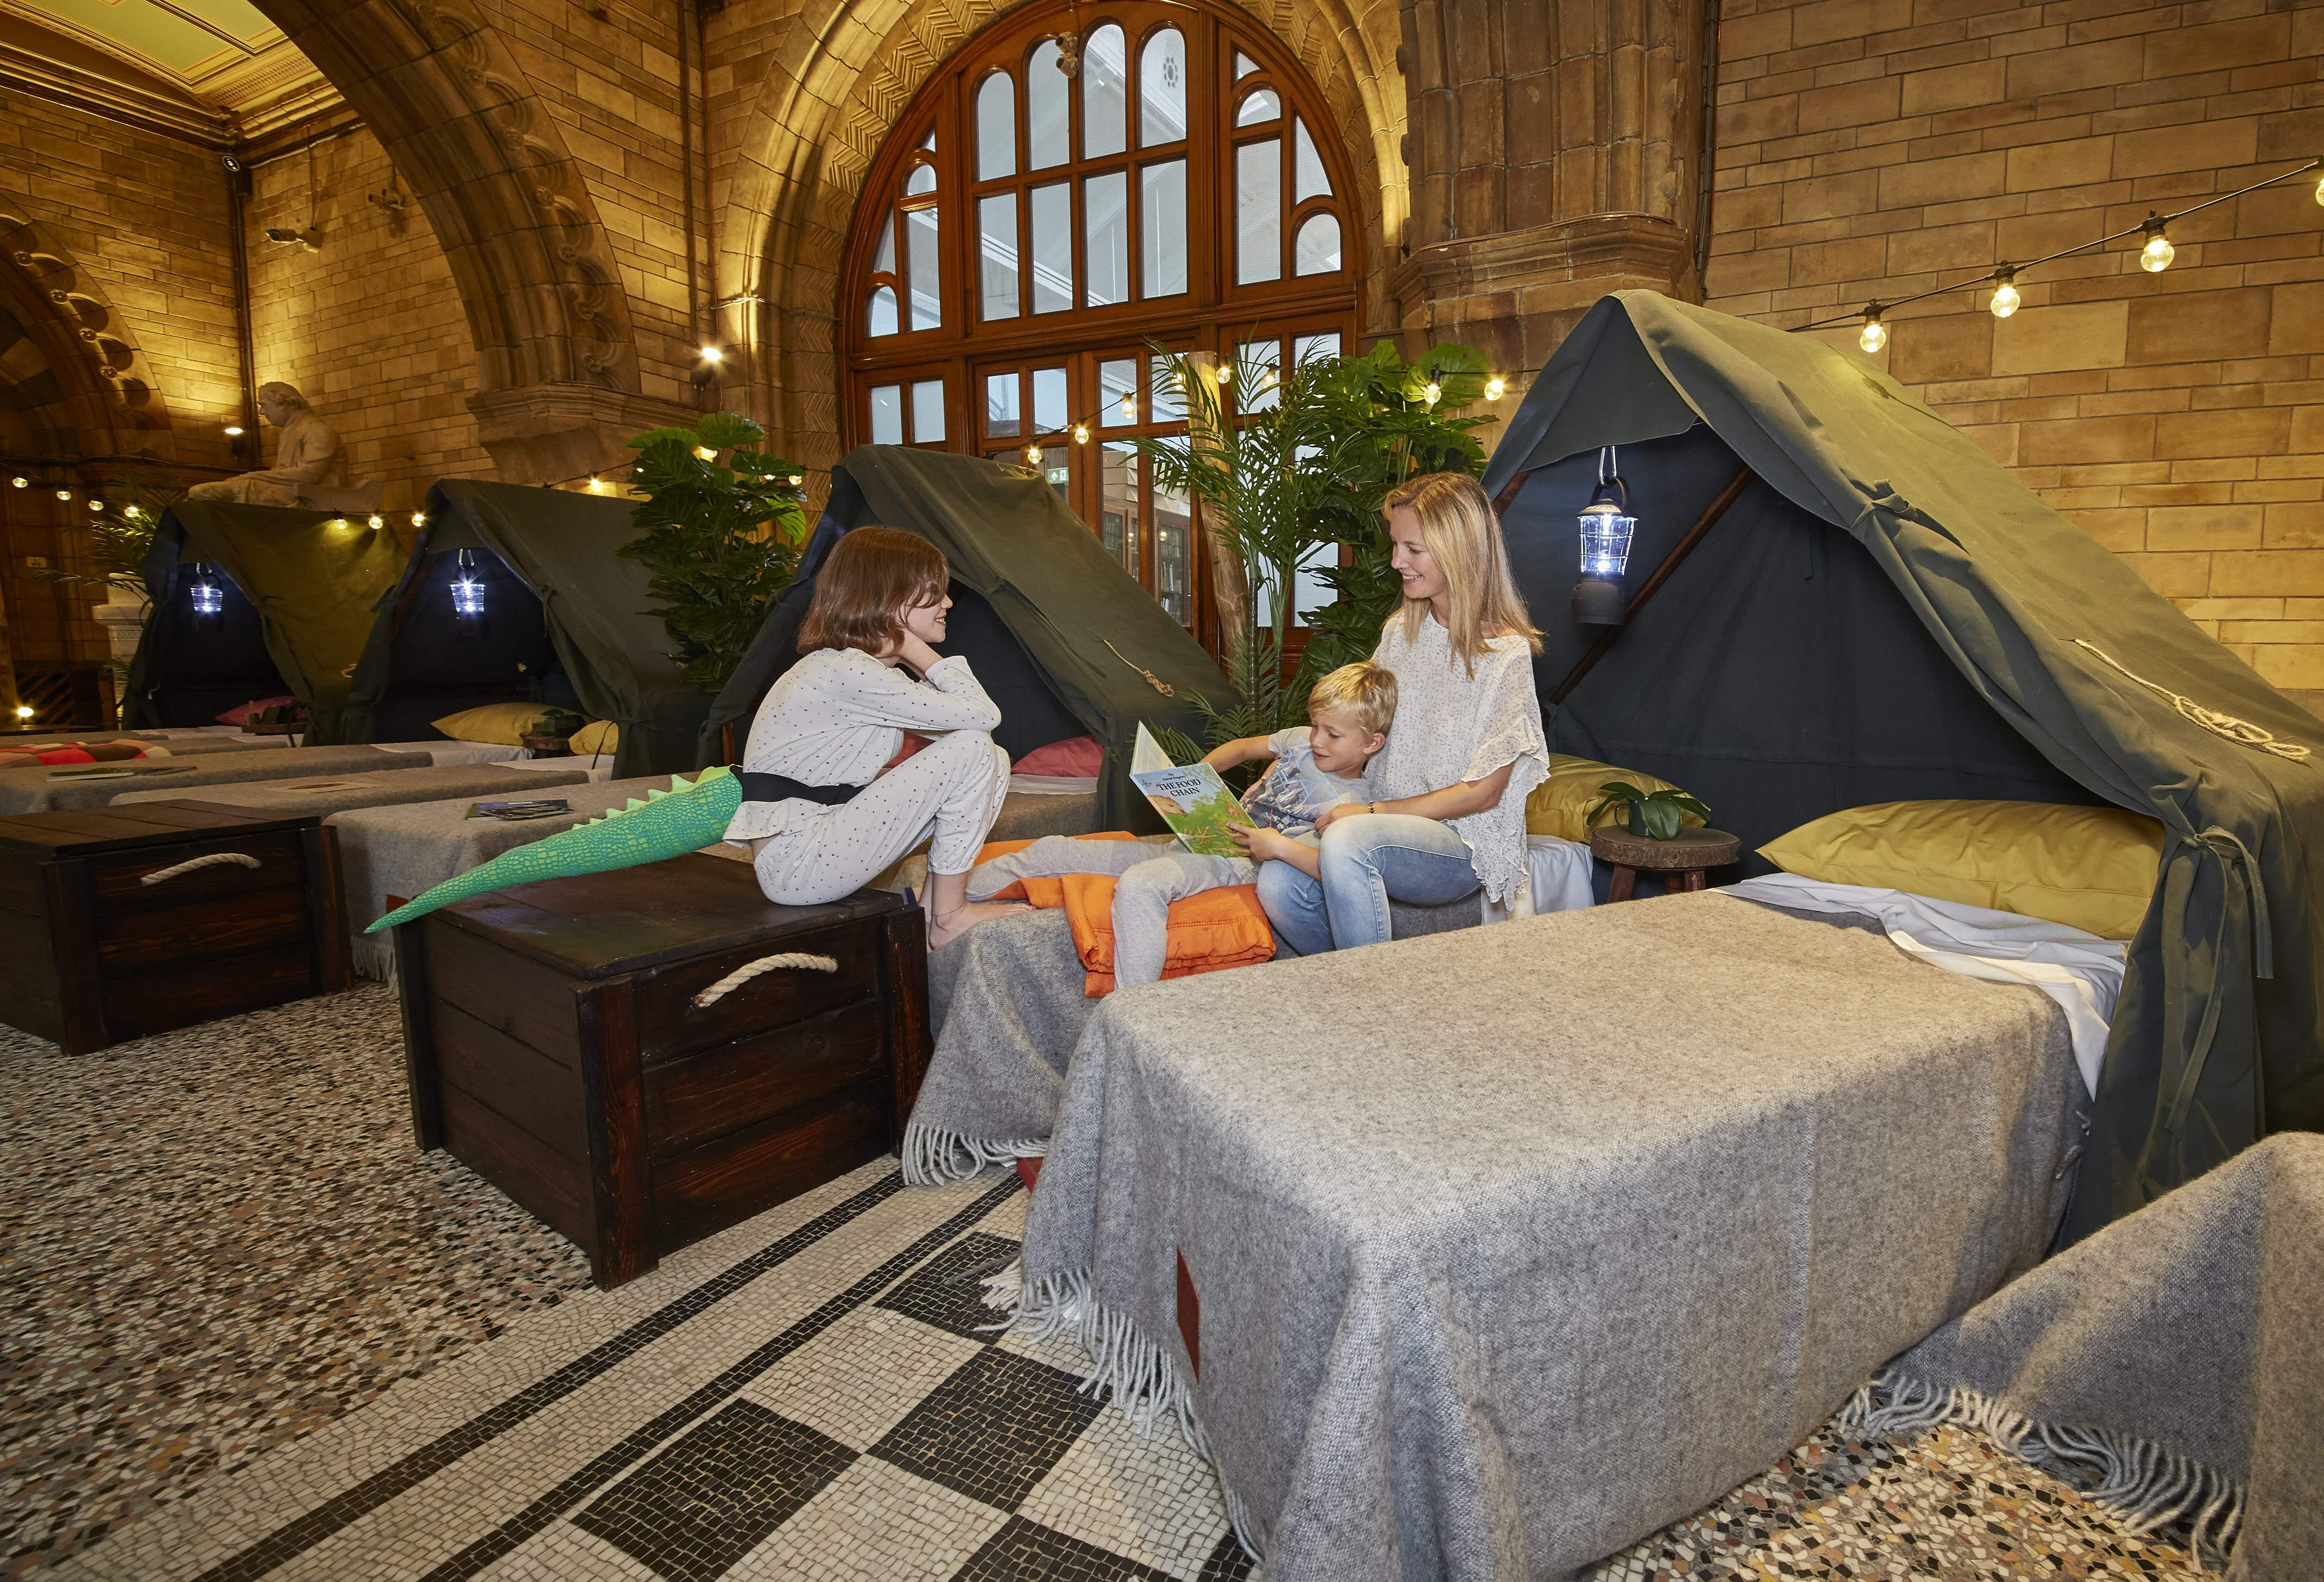 Airbnb is offering family sleepovers at its exclusive Base Camp at London's Natural History Museum